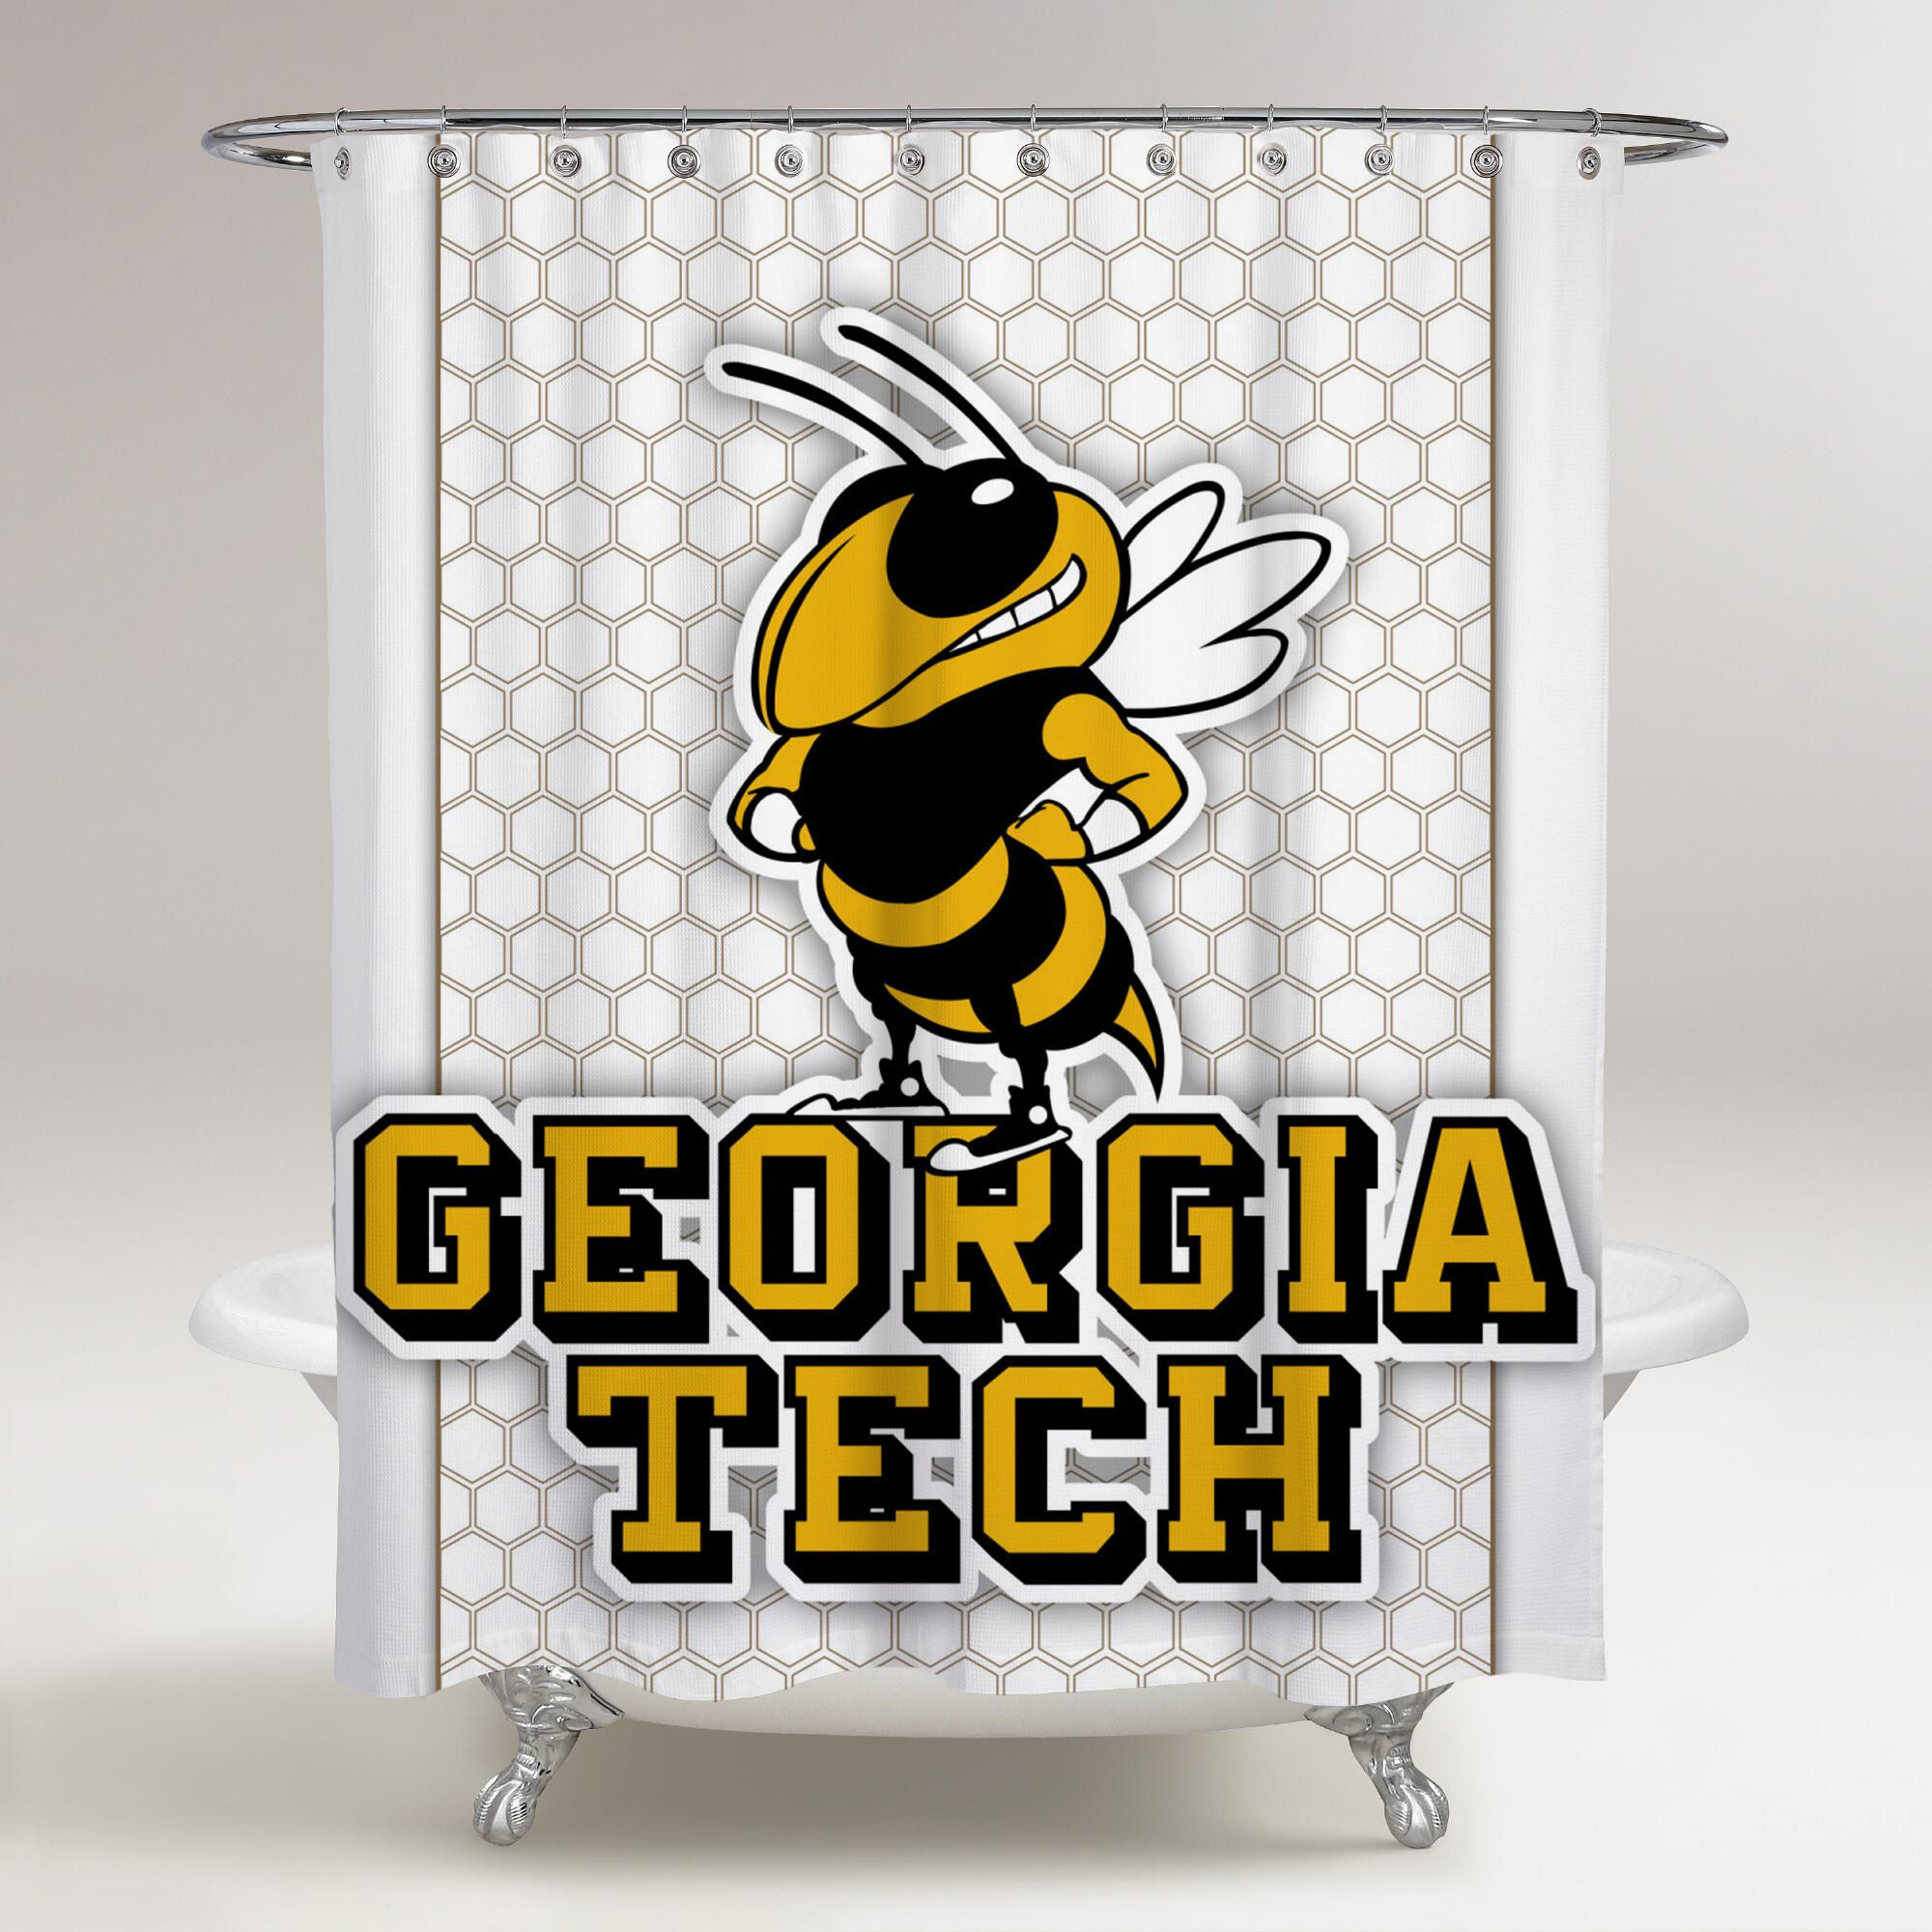 Georgia Tech Yellow Jackets Logo White Background Printed Shower